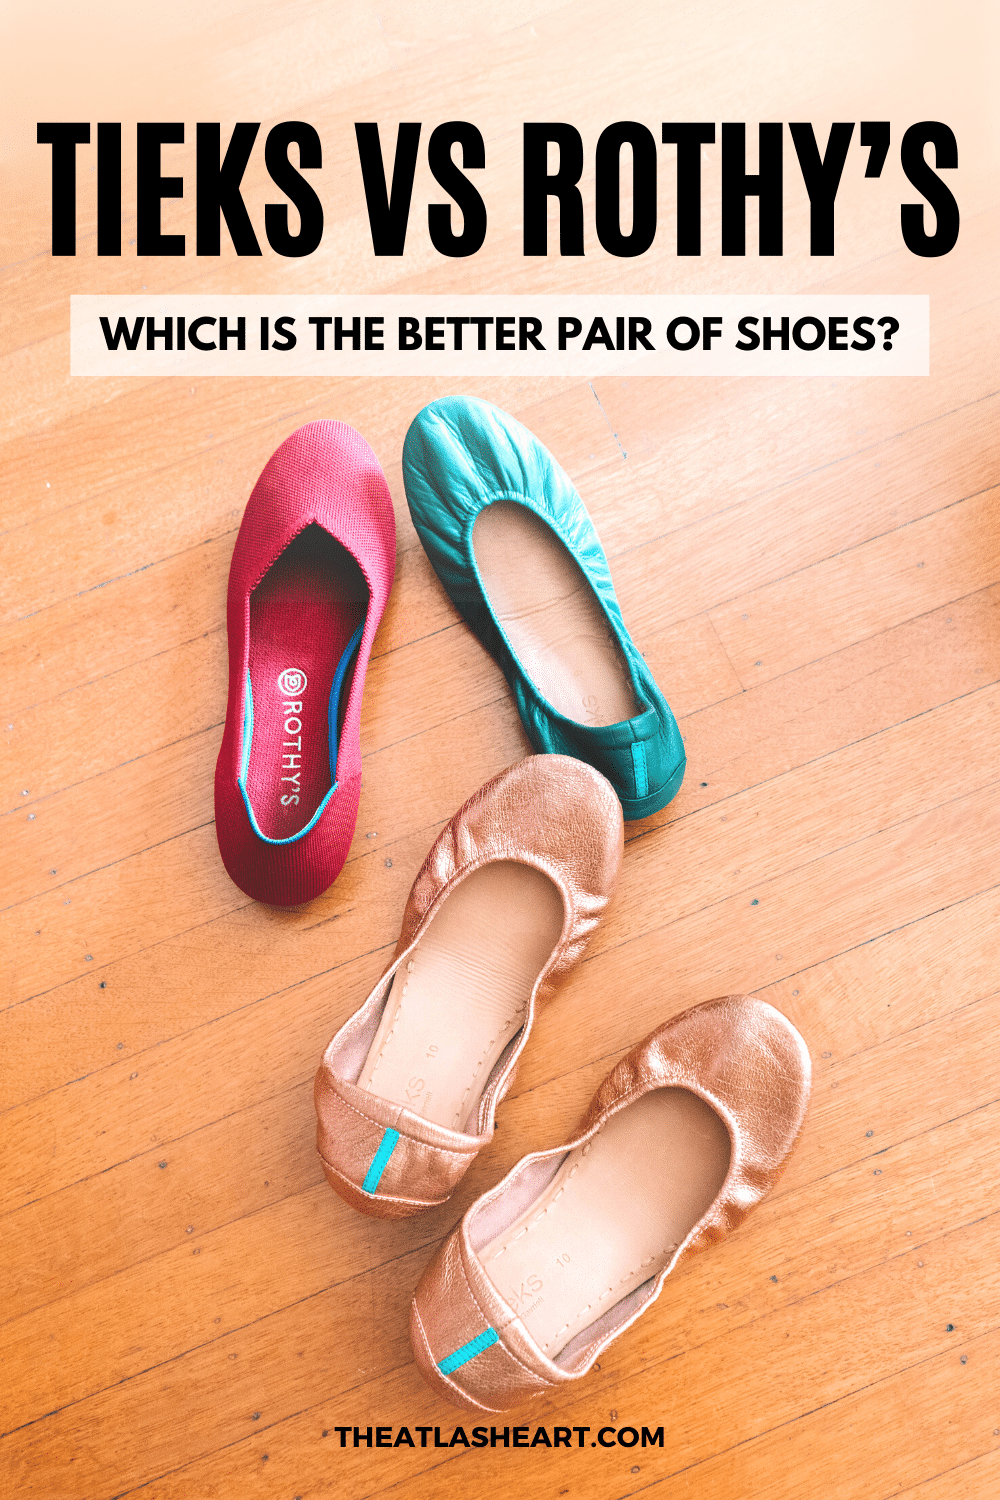 Tieks vs Rothy's: Which is the Better Pair of Shoes?